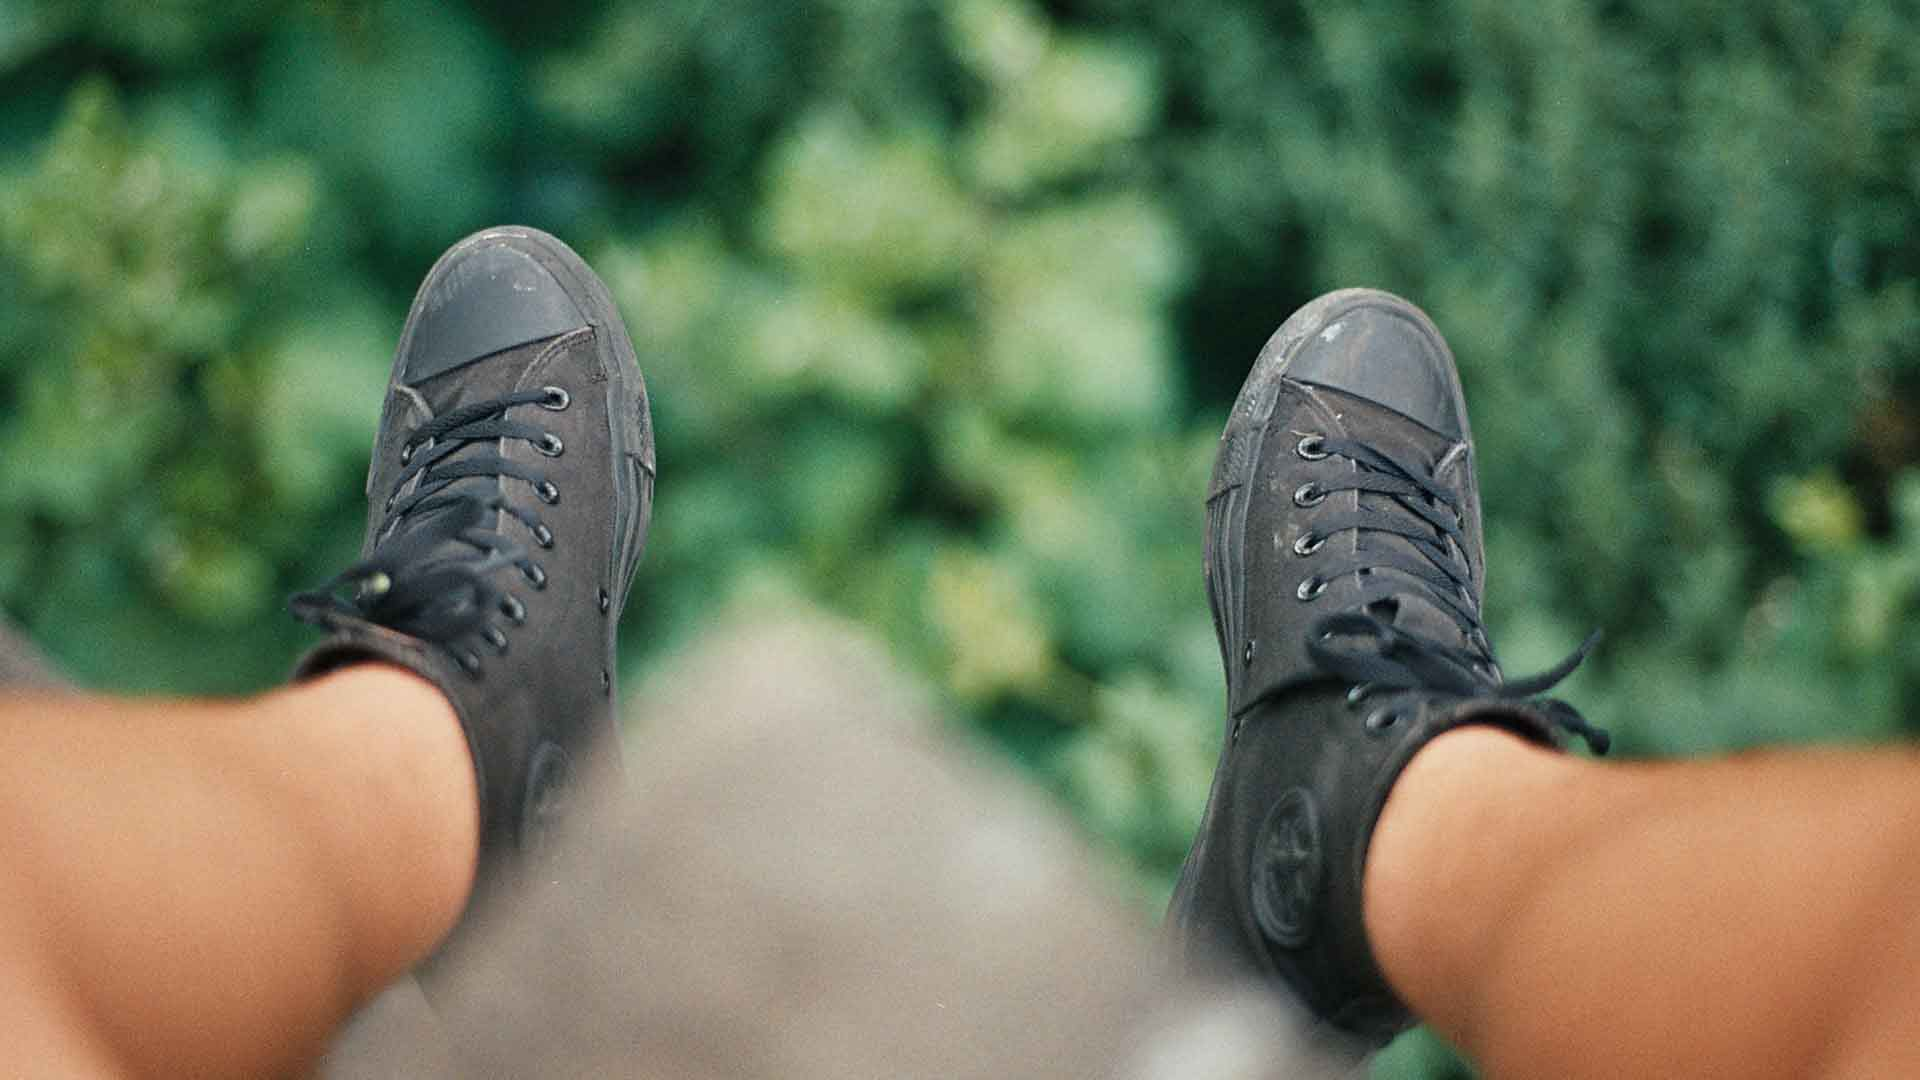 What is depth of field - POV of converse trainers hanging from ledge